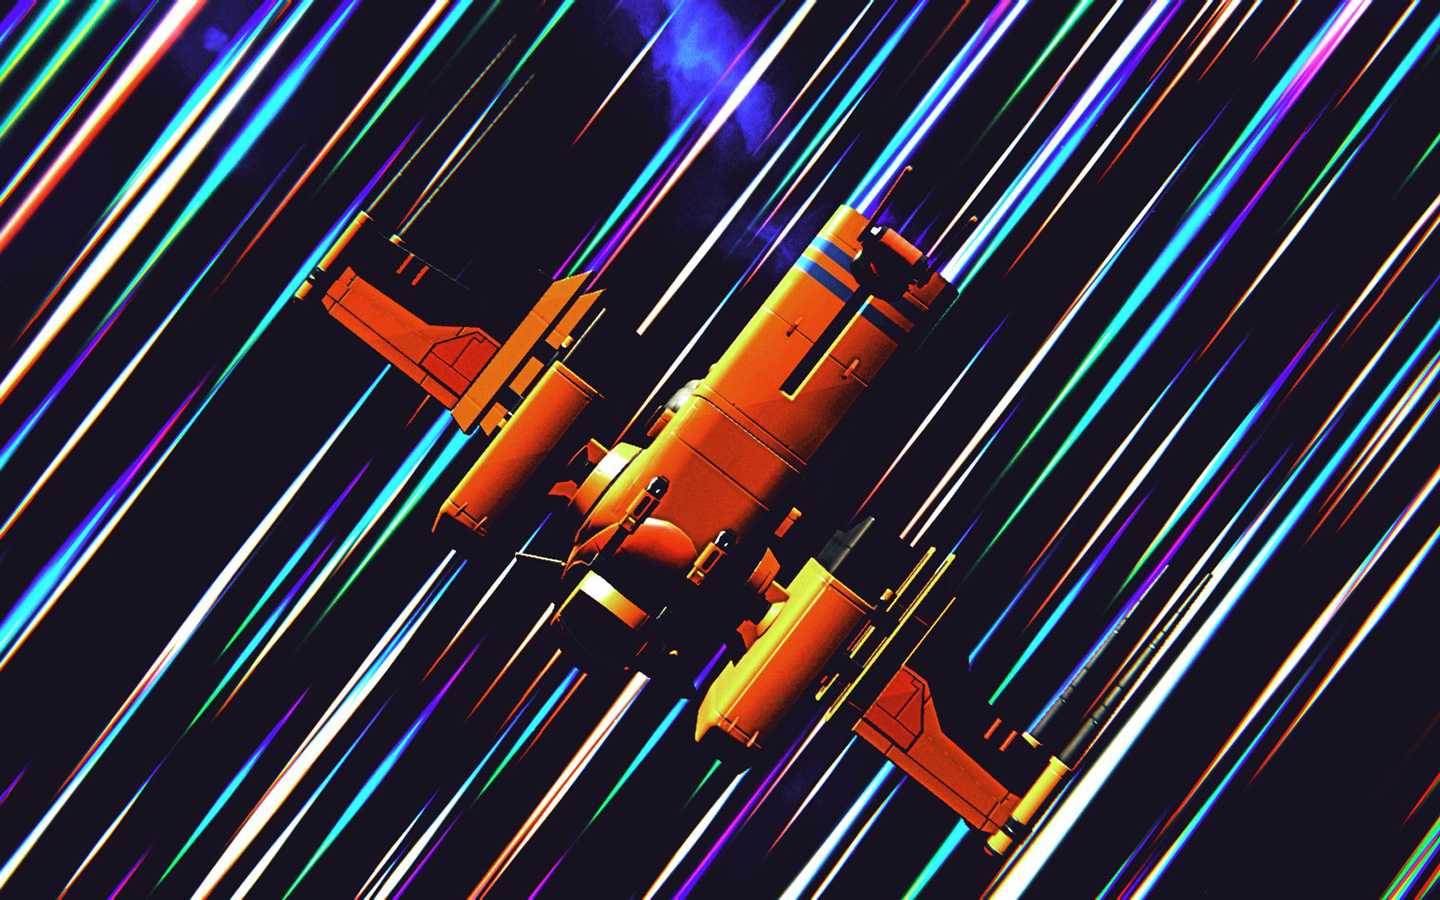 No Man's Sky Wallpaper in 1440x900